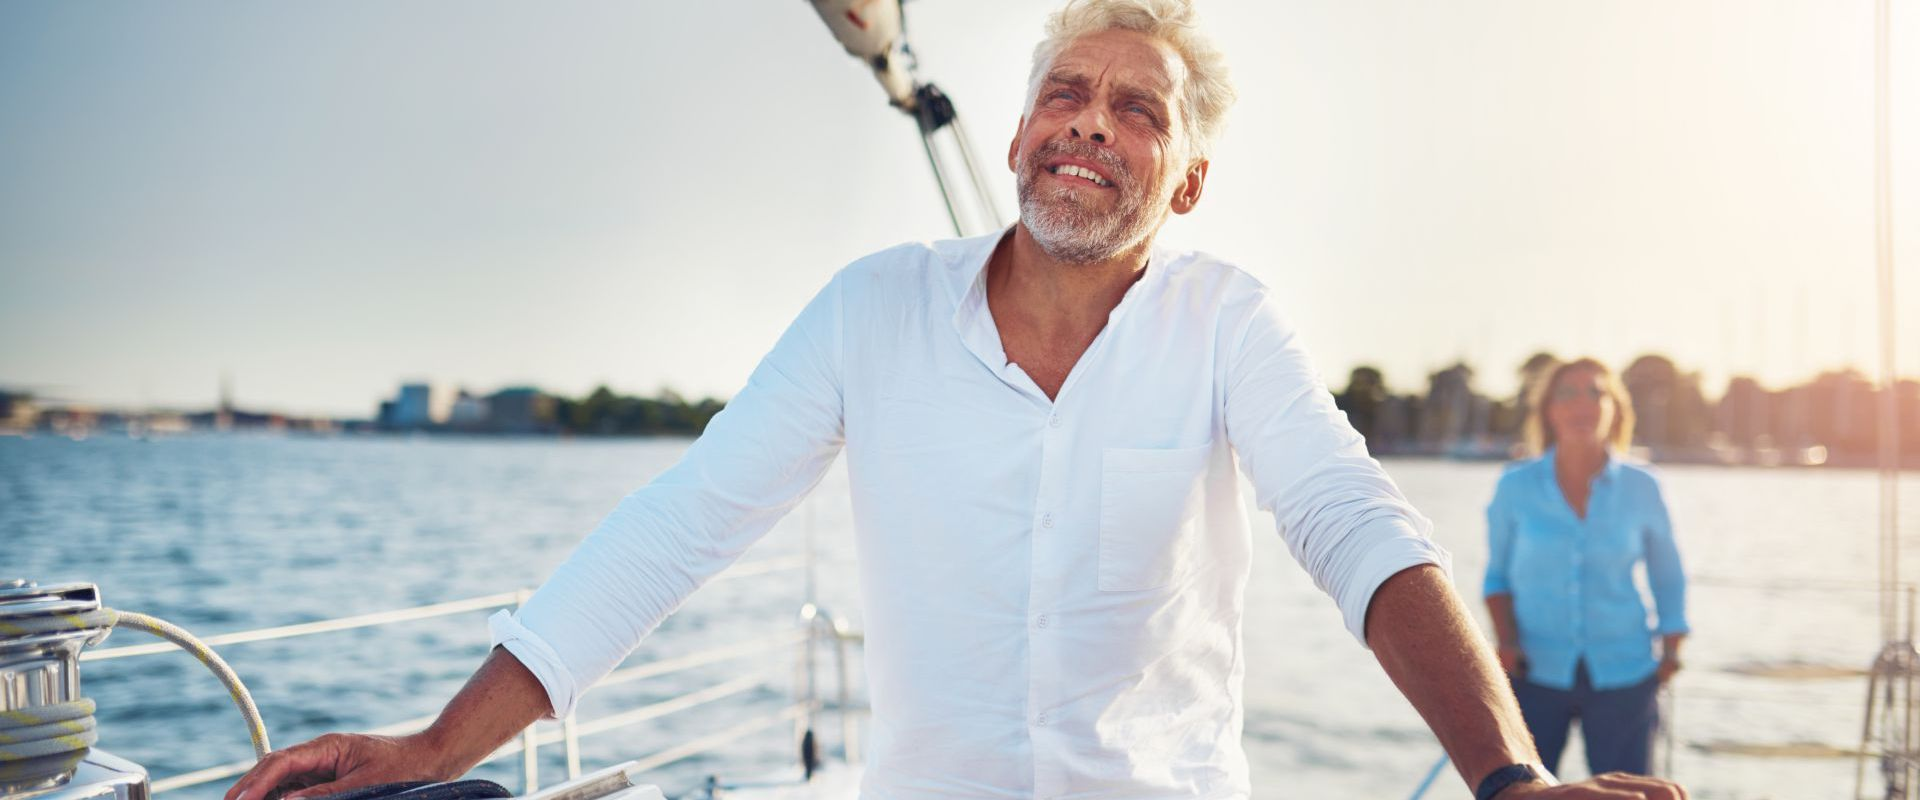 Over 60? Change your life today with our non evasive procedure.